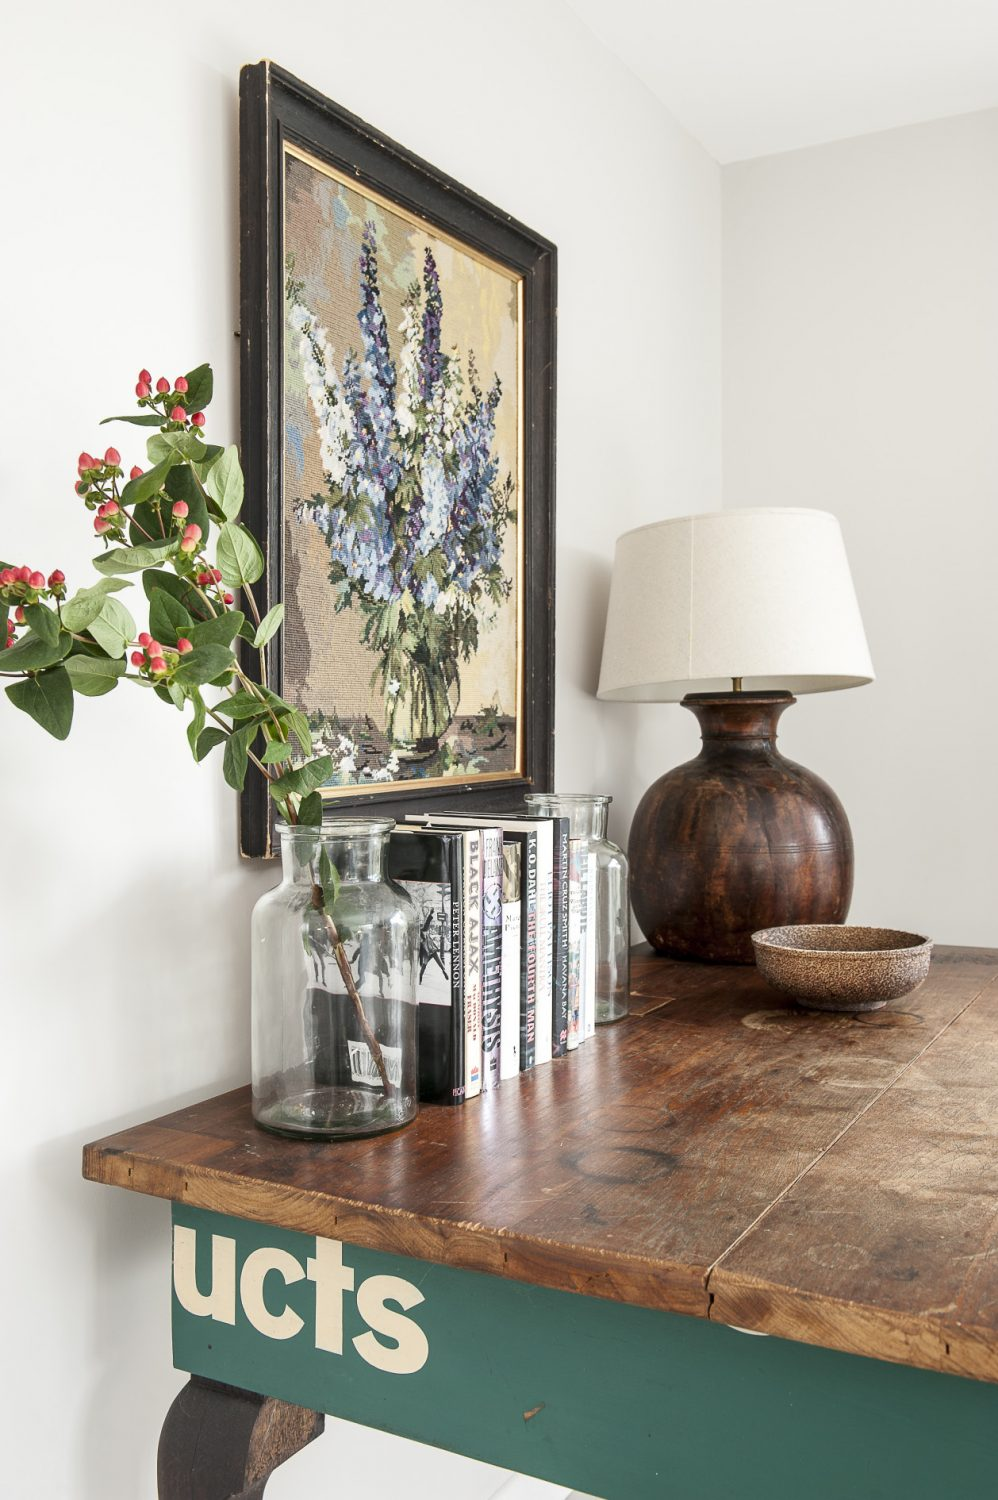 The vintage Conran Shop lamp and delphiniums tapestry are both from McCully & Crane